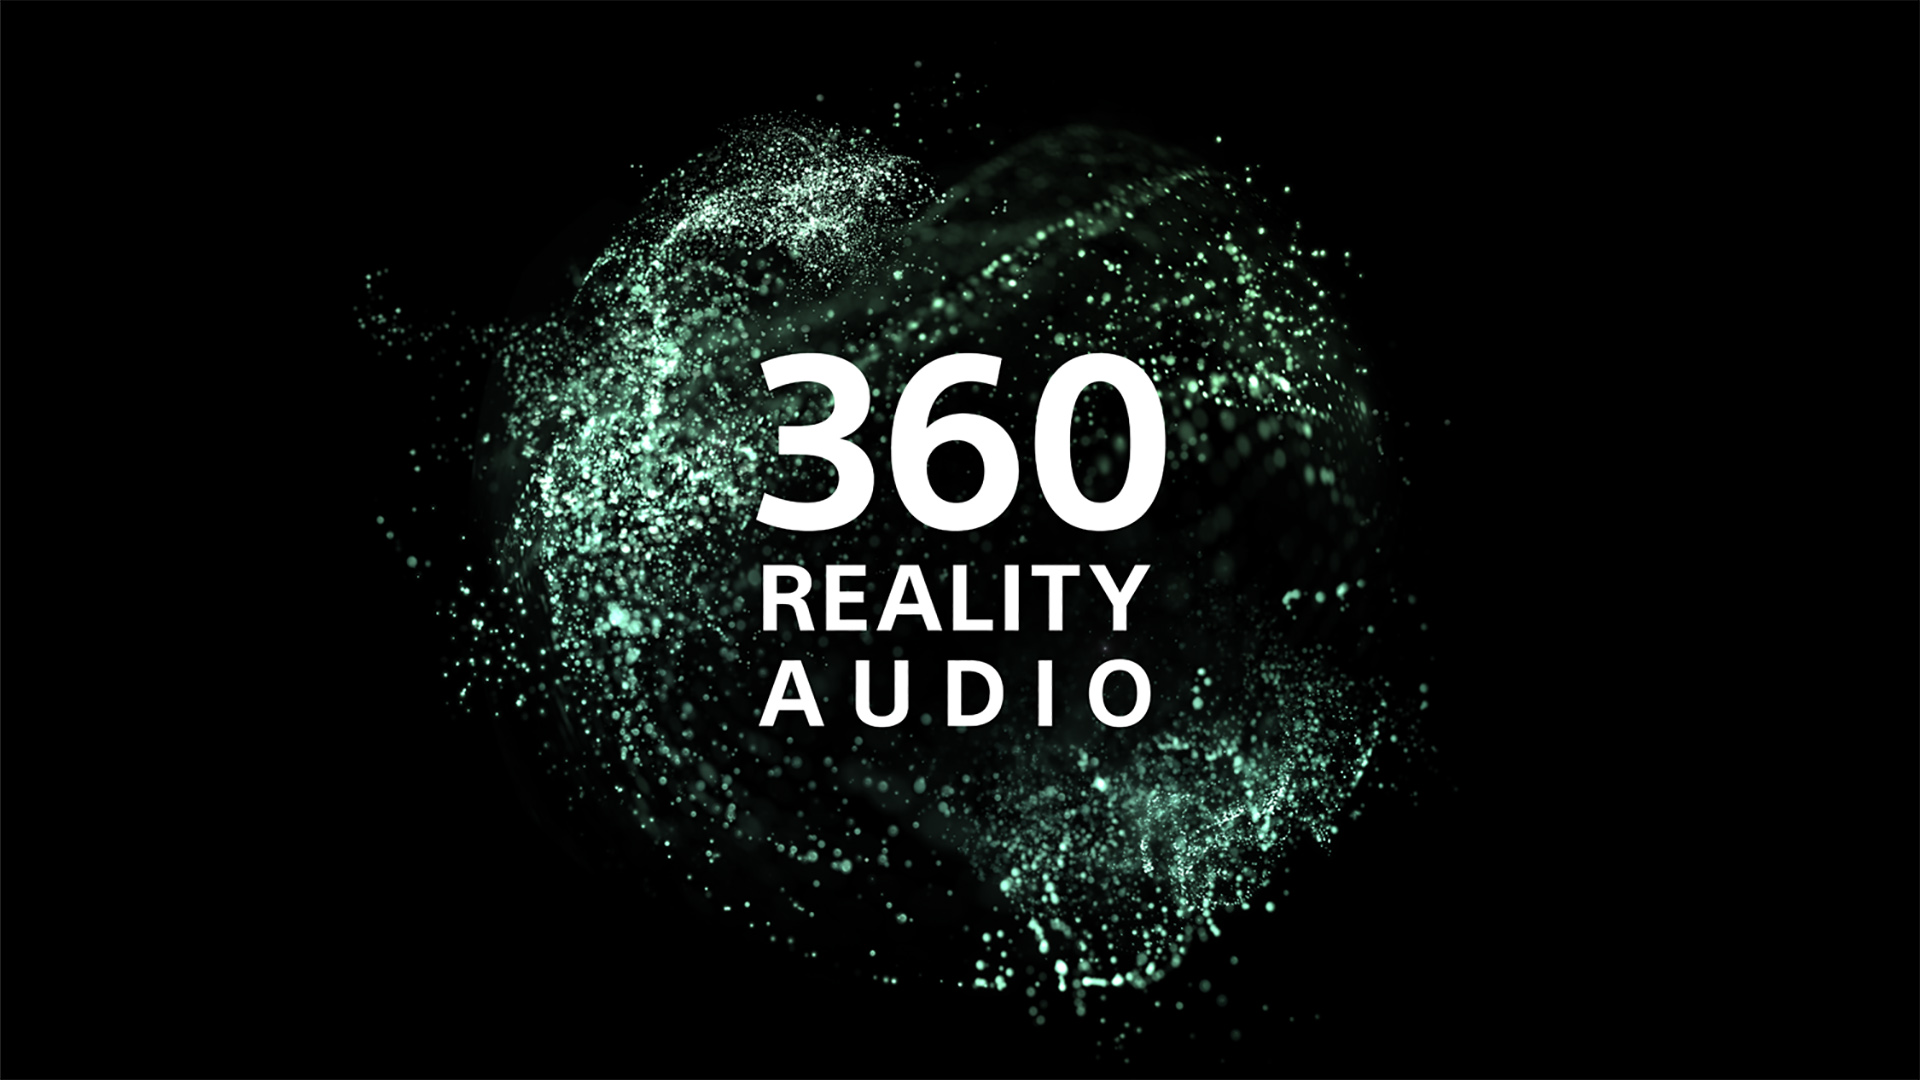 Sony's 360 Reality Audio can come to Android